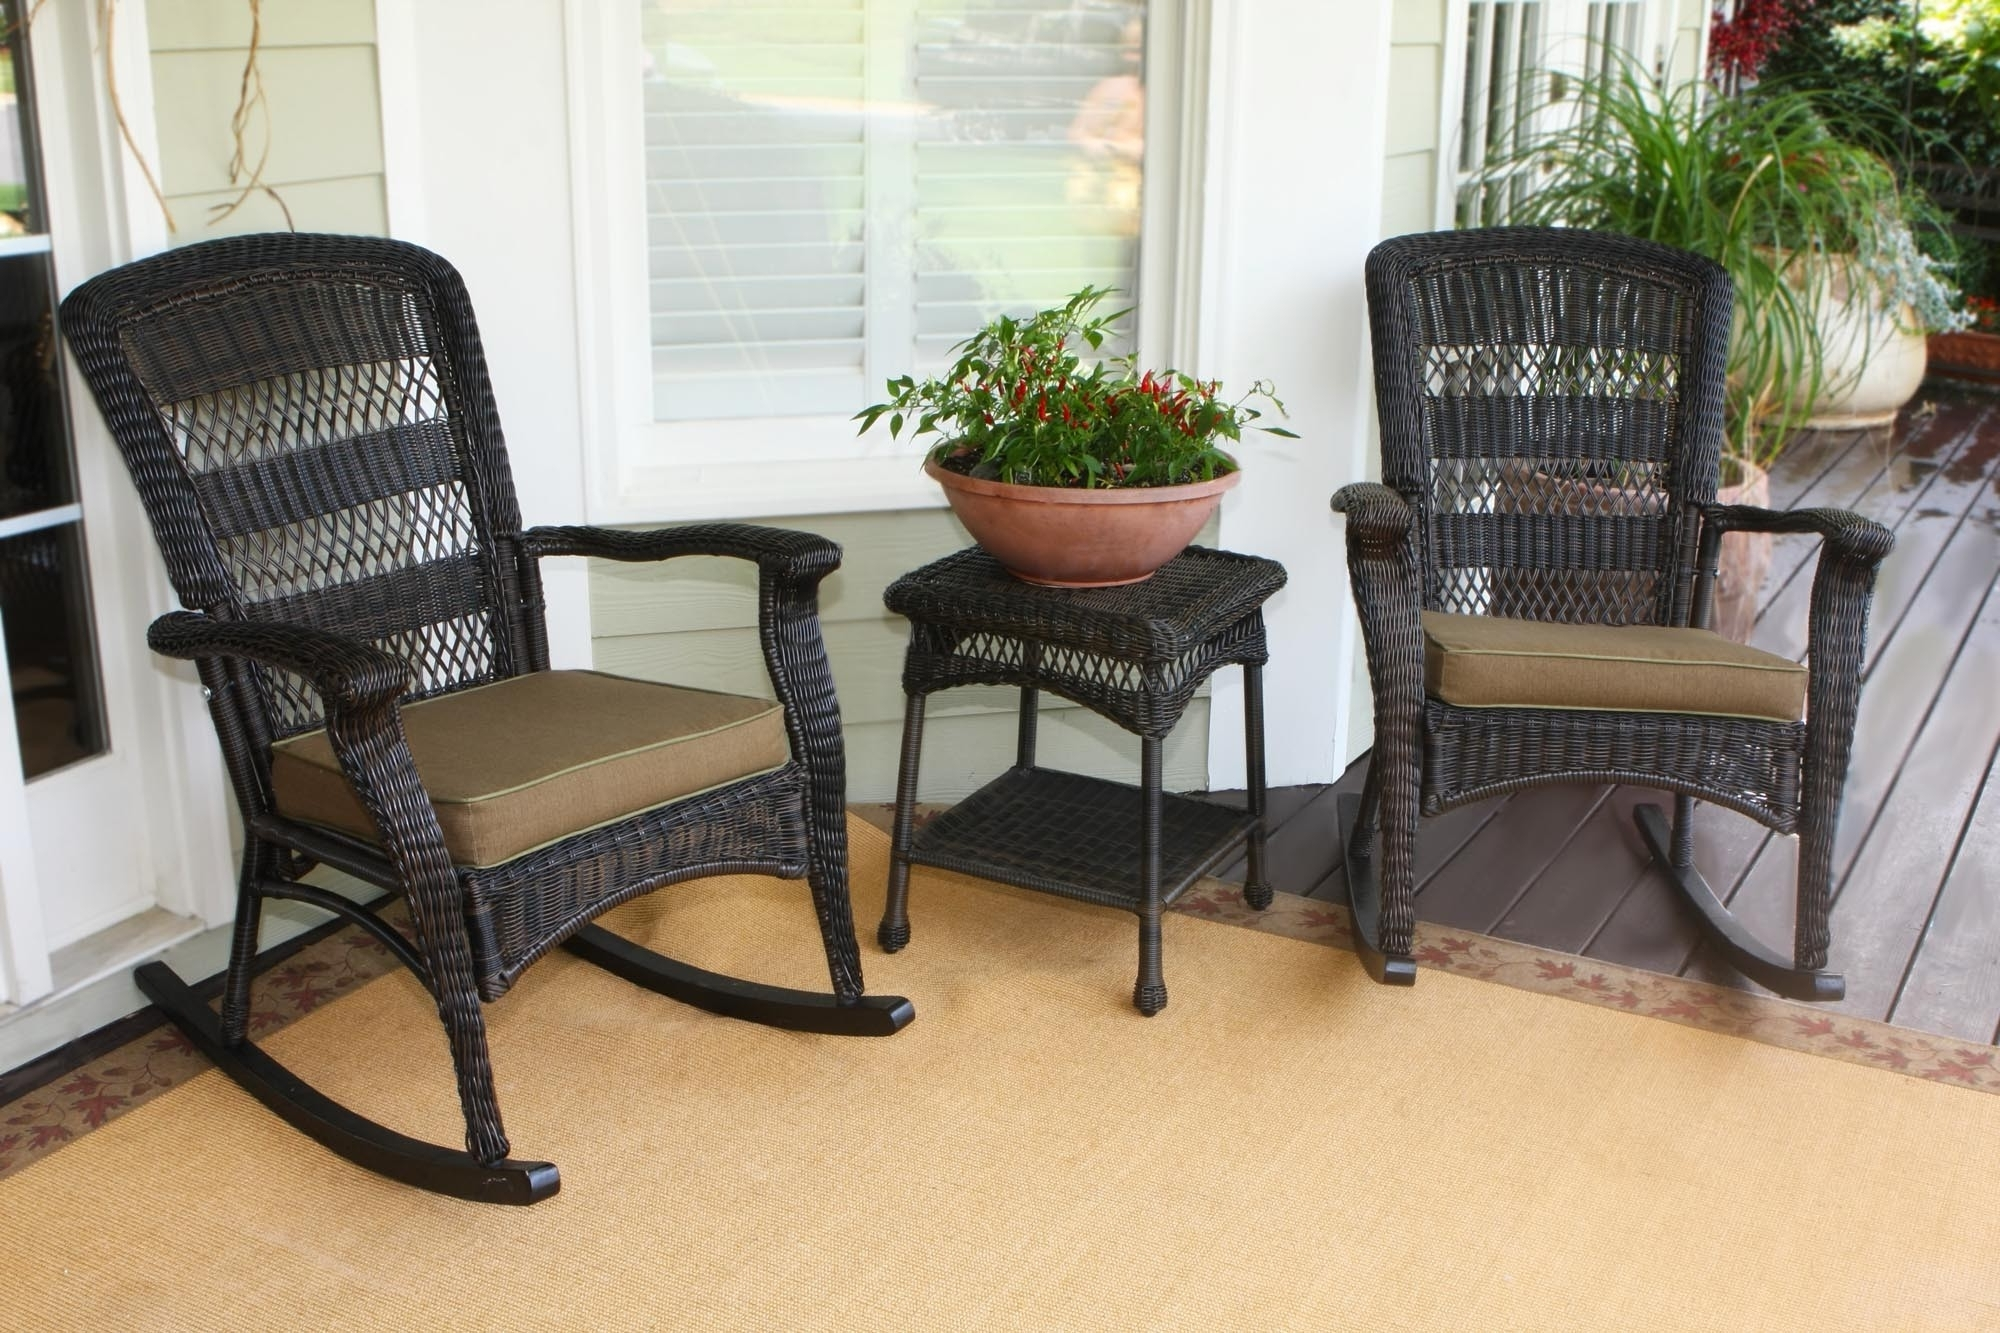 Livingroom : All Weather Patio Rocking Chairs Chair Sets Wicker Best Inside Famous Brown Wicker Patio Rocking Chairs (View 7 of 20)